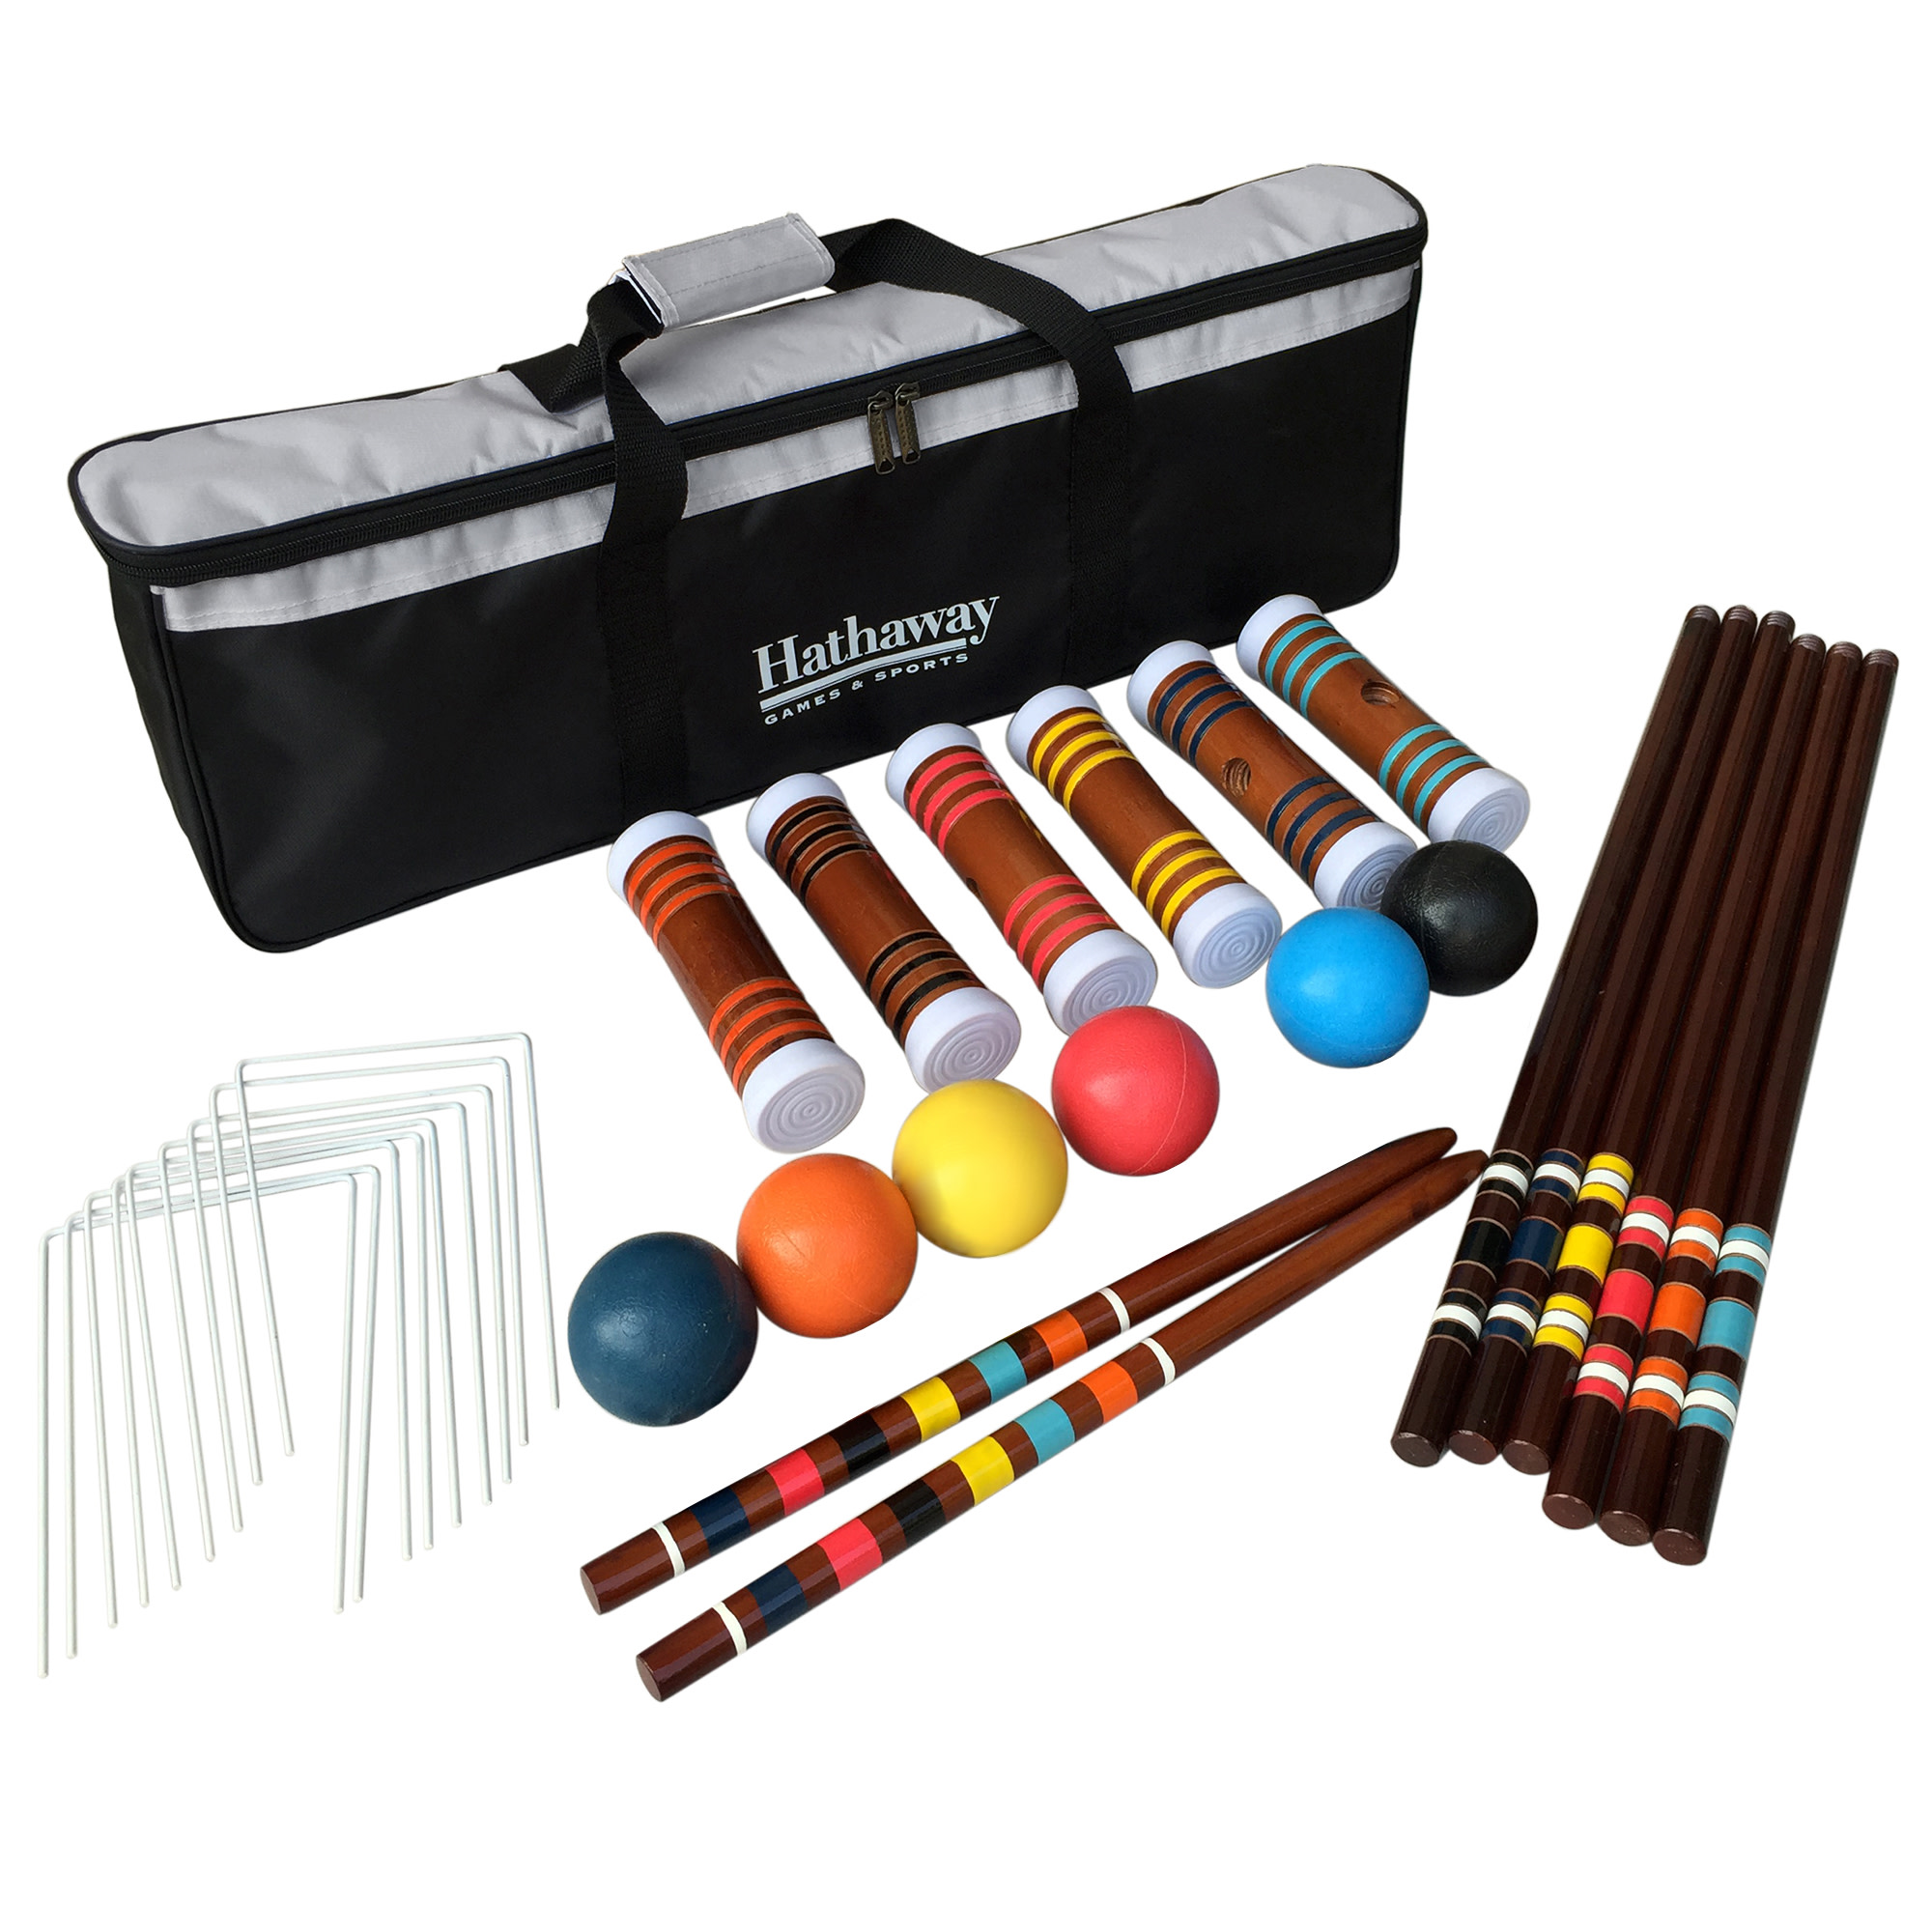 Hathaway 6-Player Croquet Set w/6 Mallets, 6 Balls, 9 Wickets, 2 Goal Stakes, & Nylon Carry Bag - Multicolored